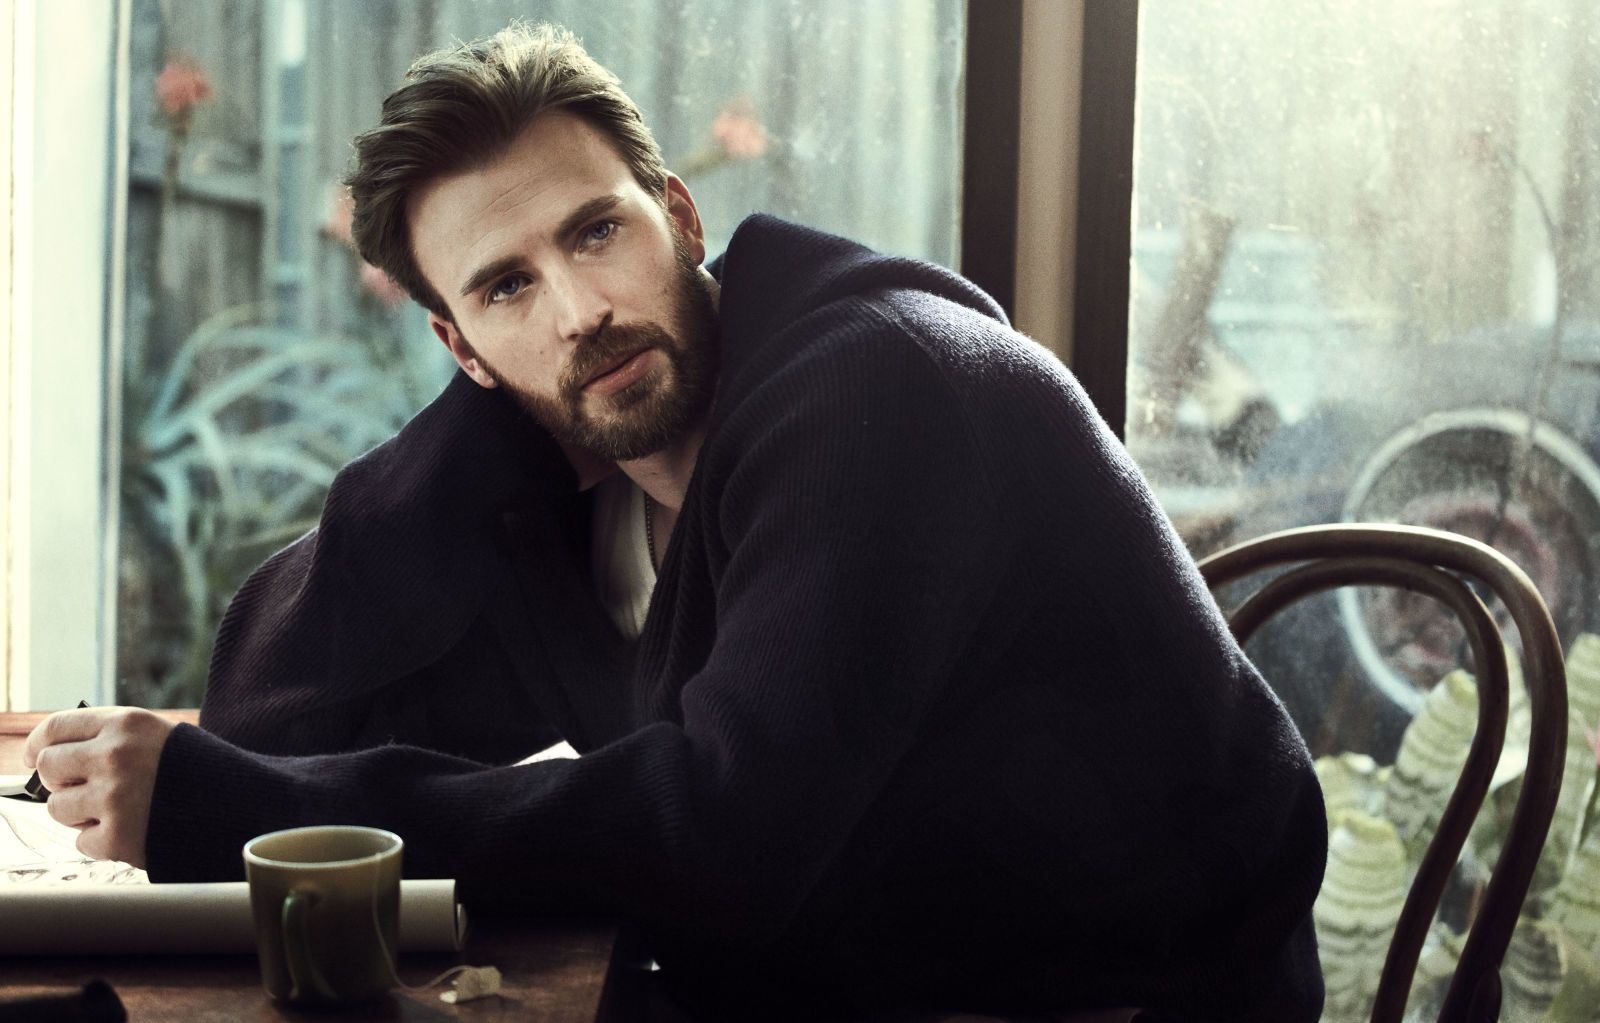 5 Photos From Our Chris Evans Cover Shoot Chris Evans Chris Evans Shirtless Chris Evans Beard